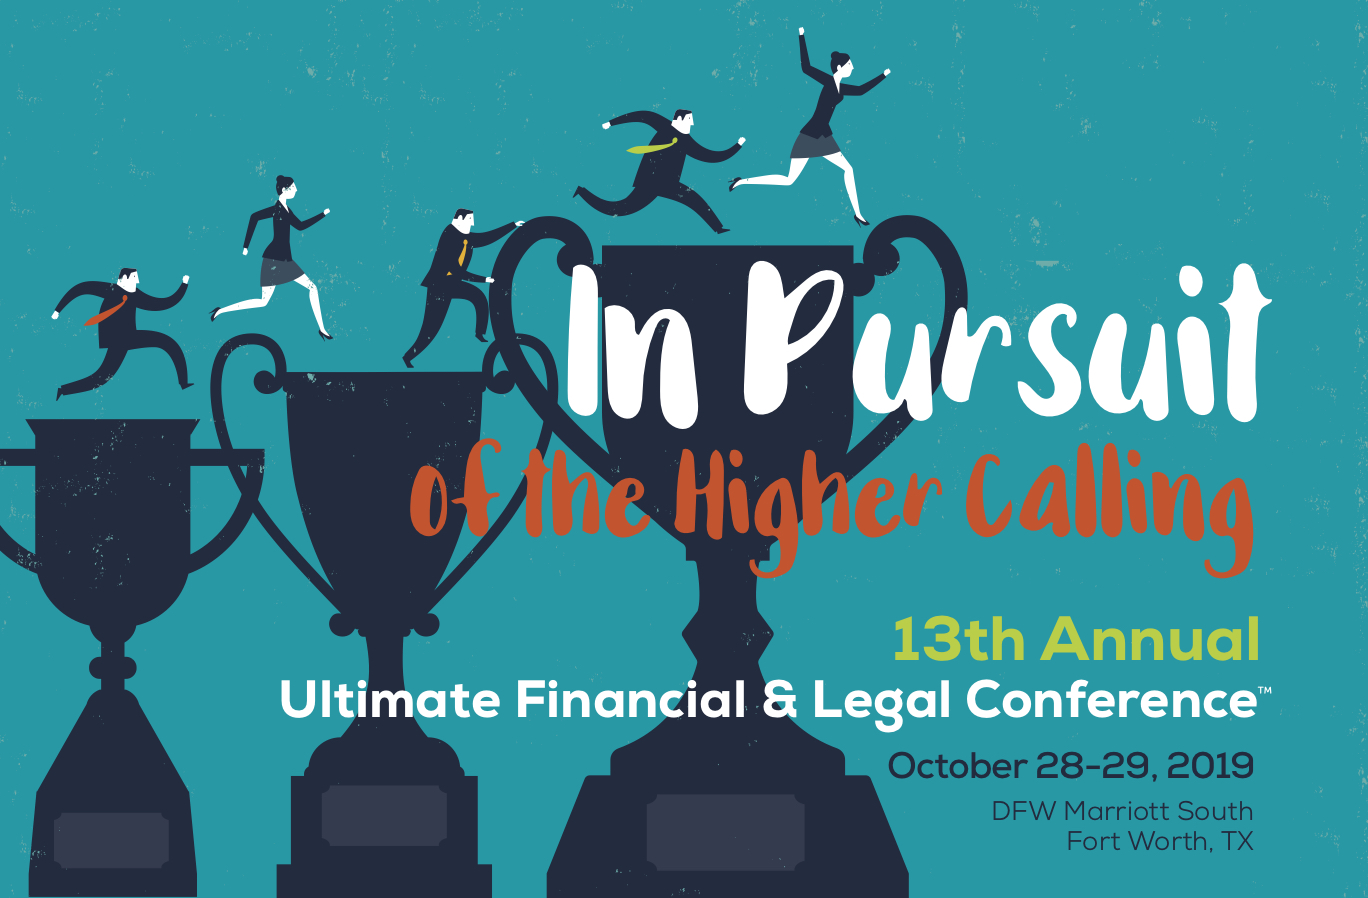 2019 Ultimate Financial Legal Conference logo